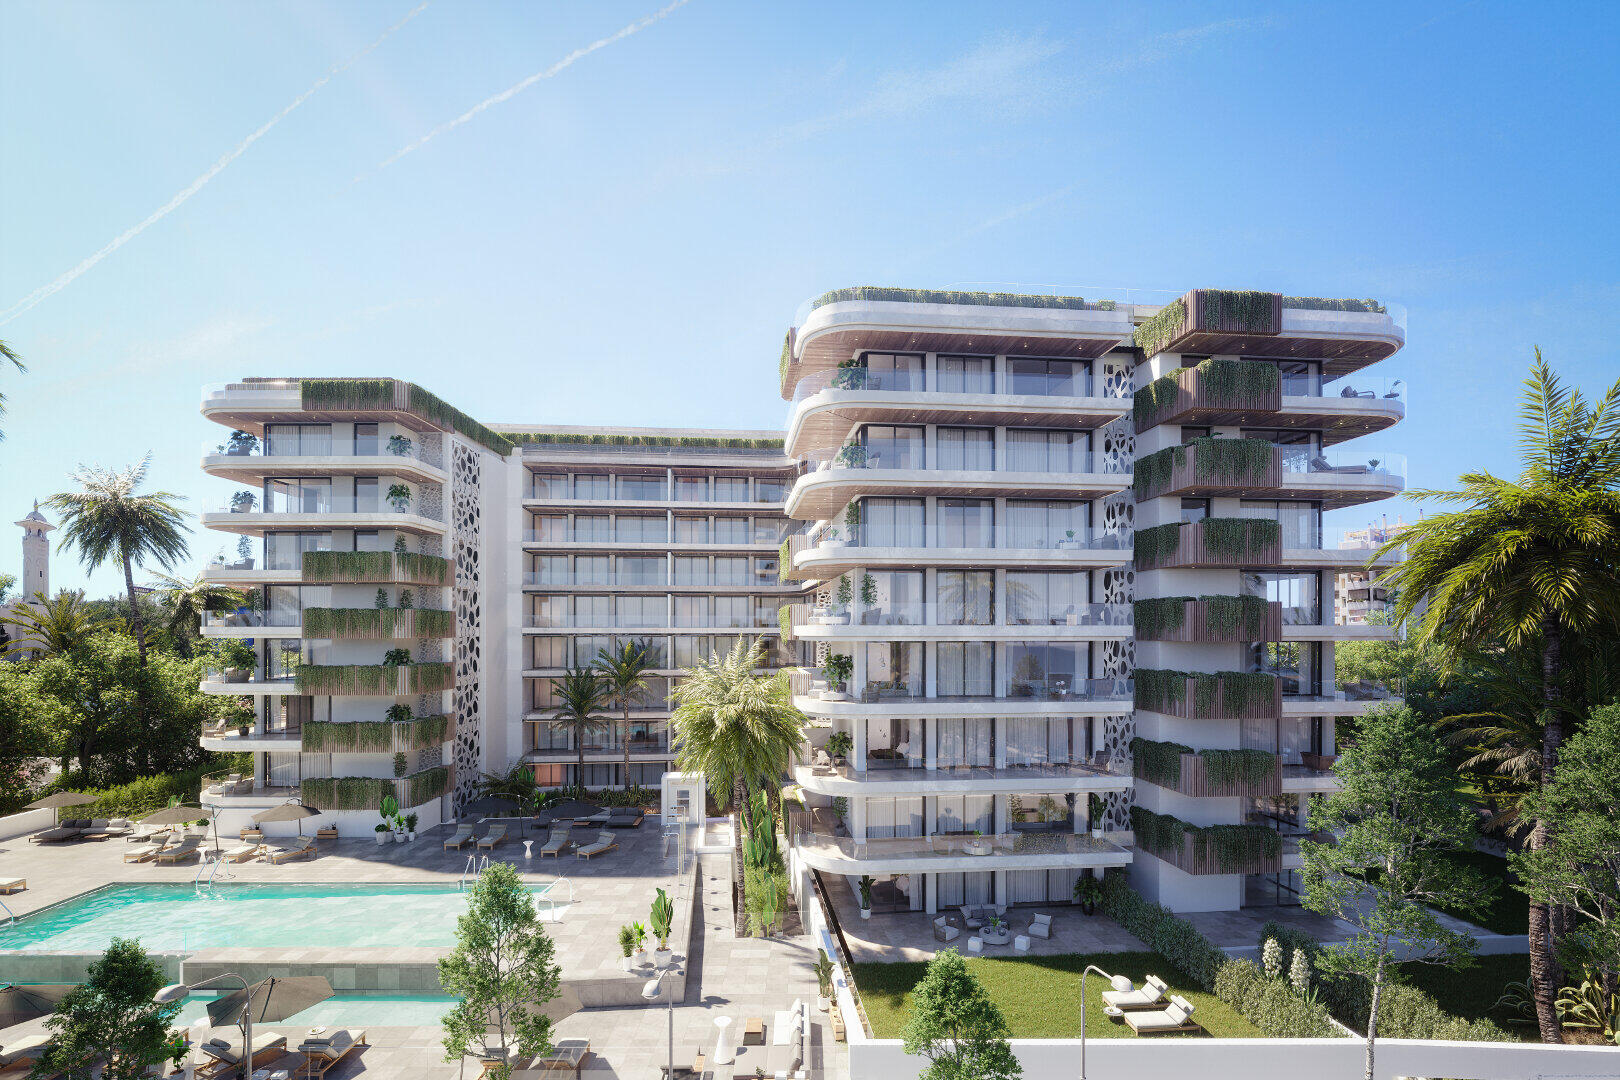 City apartment at a 100m2 from the beach in Jade Tower Fuengirola 15 minutes from Malaga airport